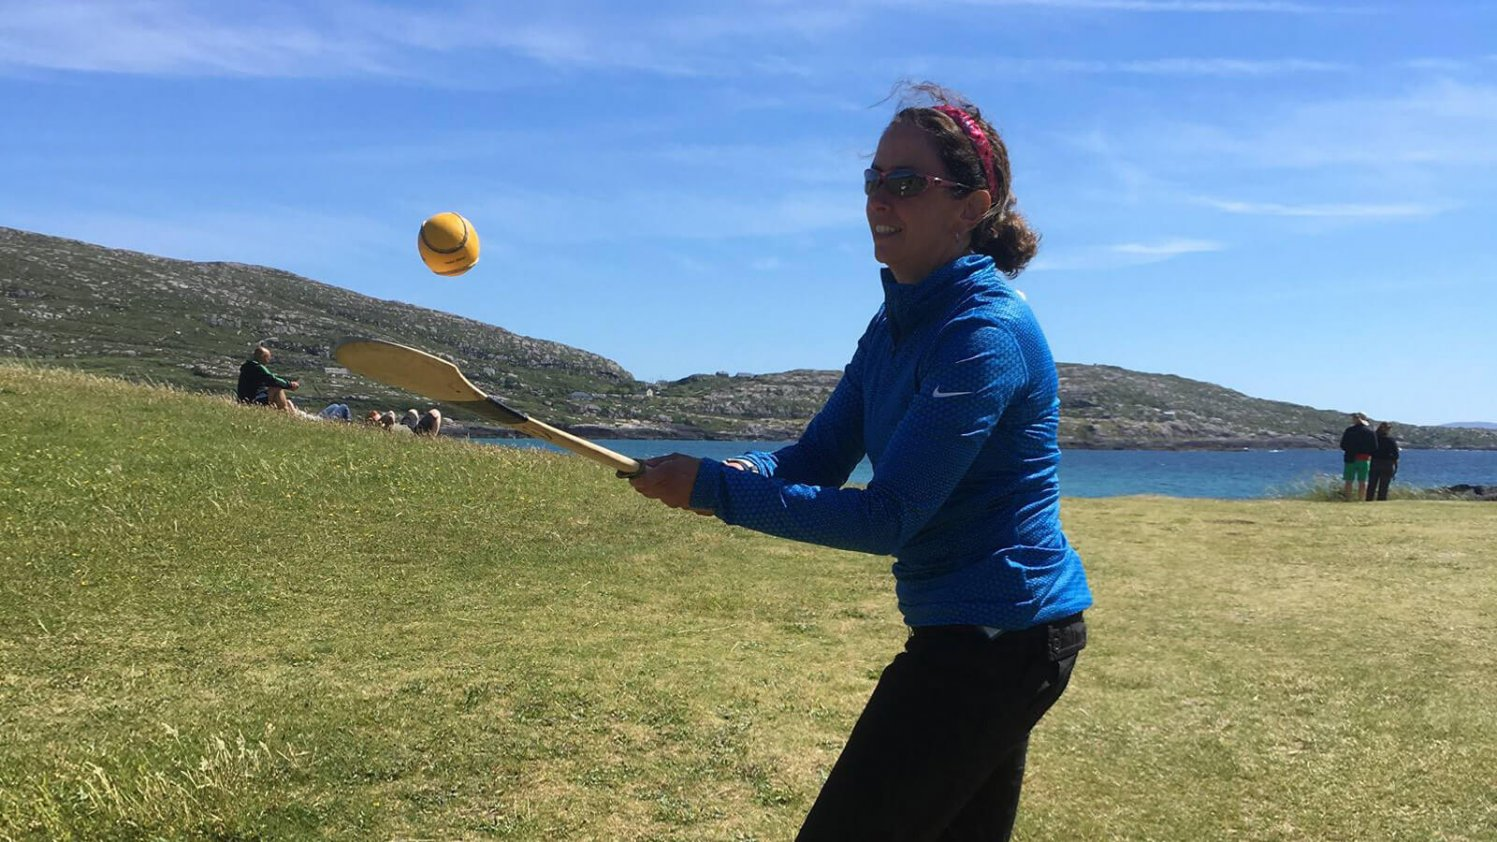 Vagabond guest tries her hand at hurling, Ireland's national sport